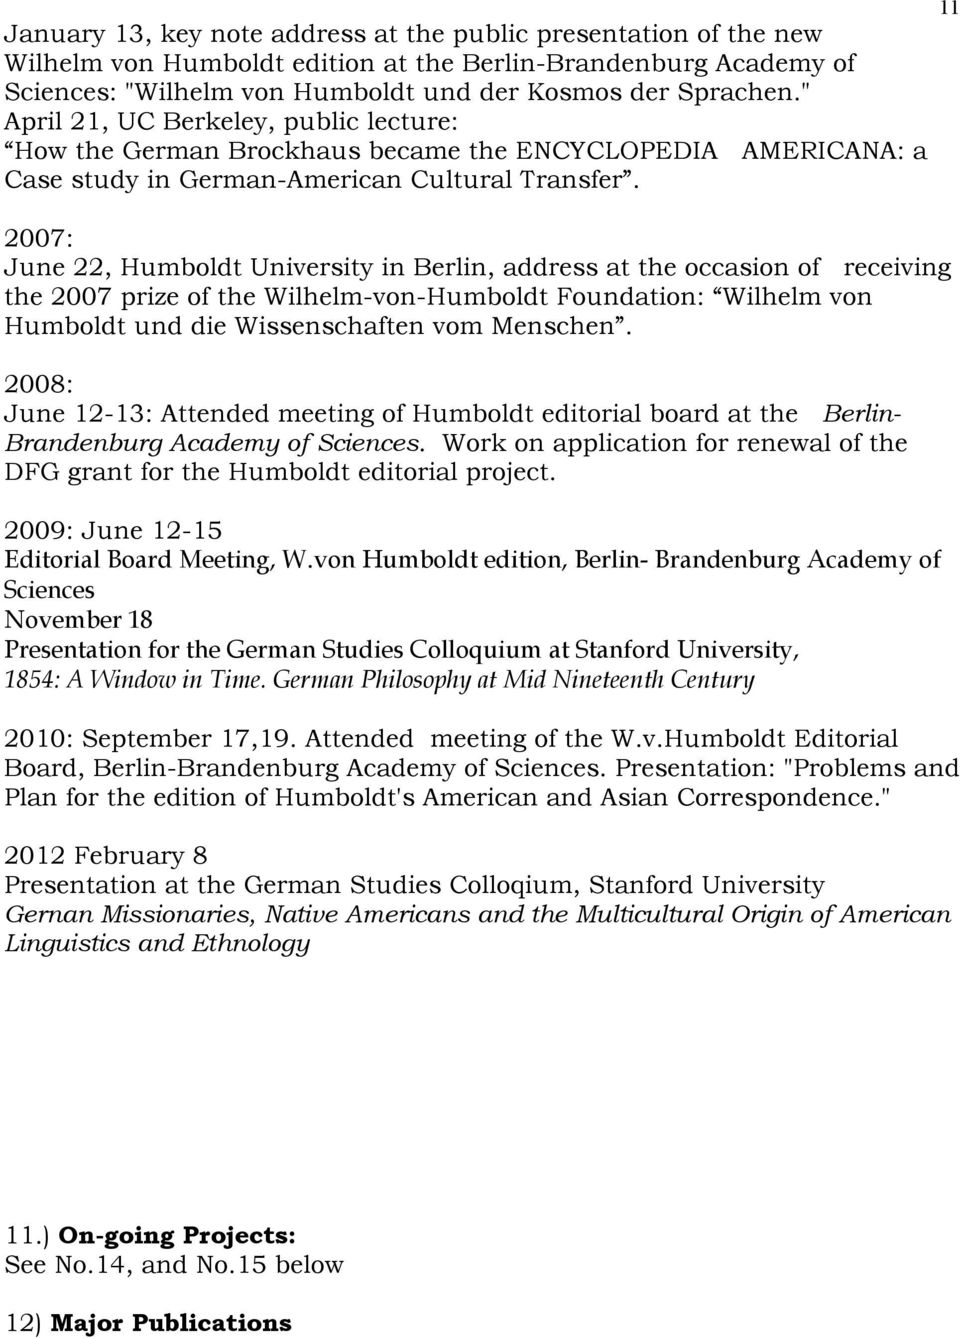 2007: June 22, Humboldt University in Berlin, address at the occasion of receiving the 2007 prize of the Wilhelm-von-Humboldt Foundation: Wilhelm von Humboldt und die Wissenschaften vom Menschen.